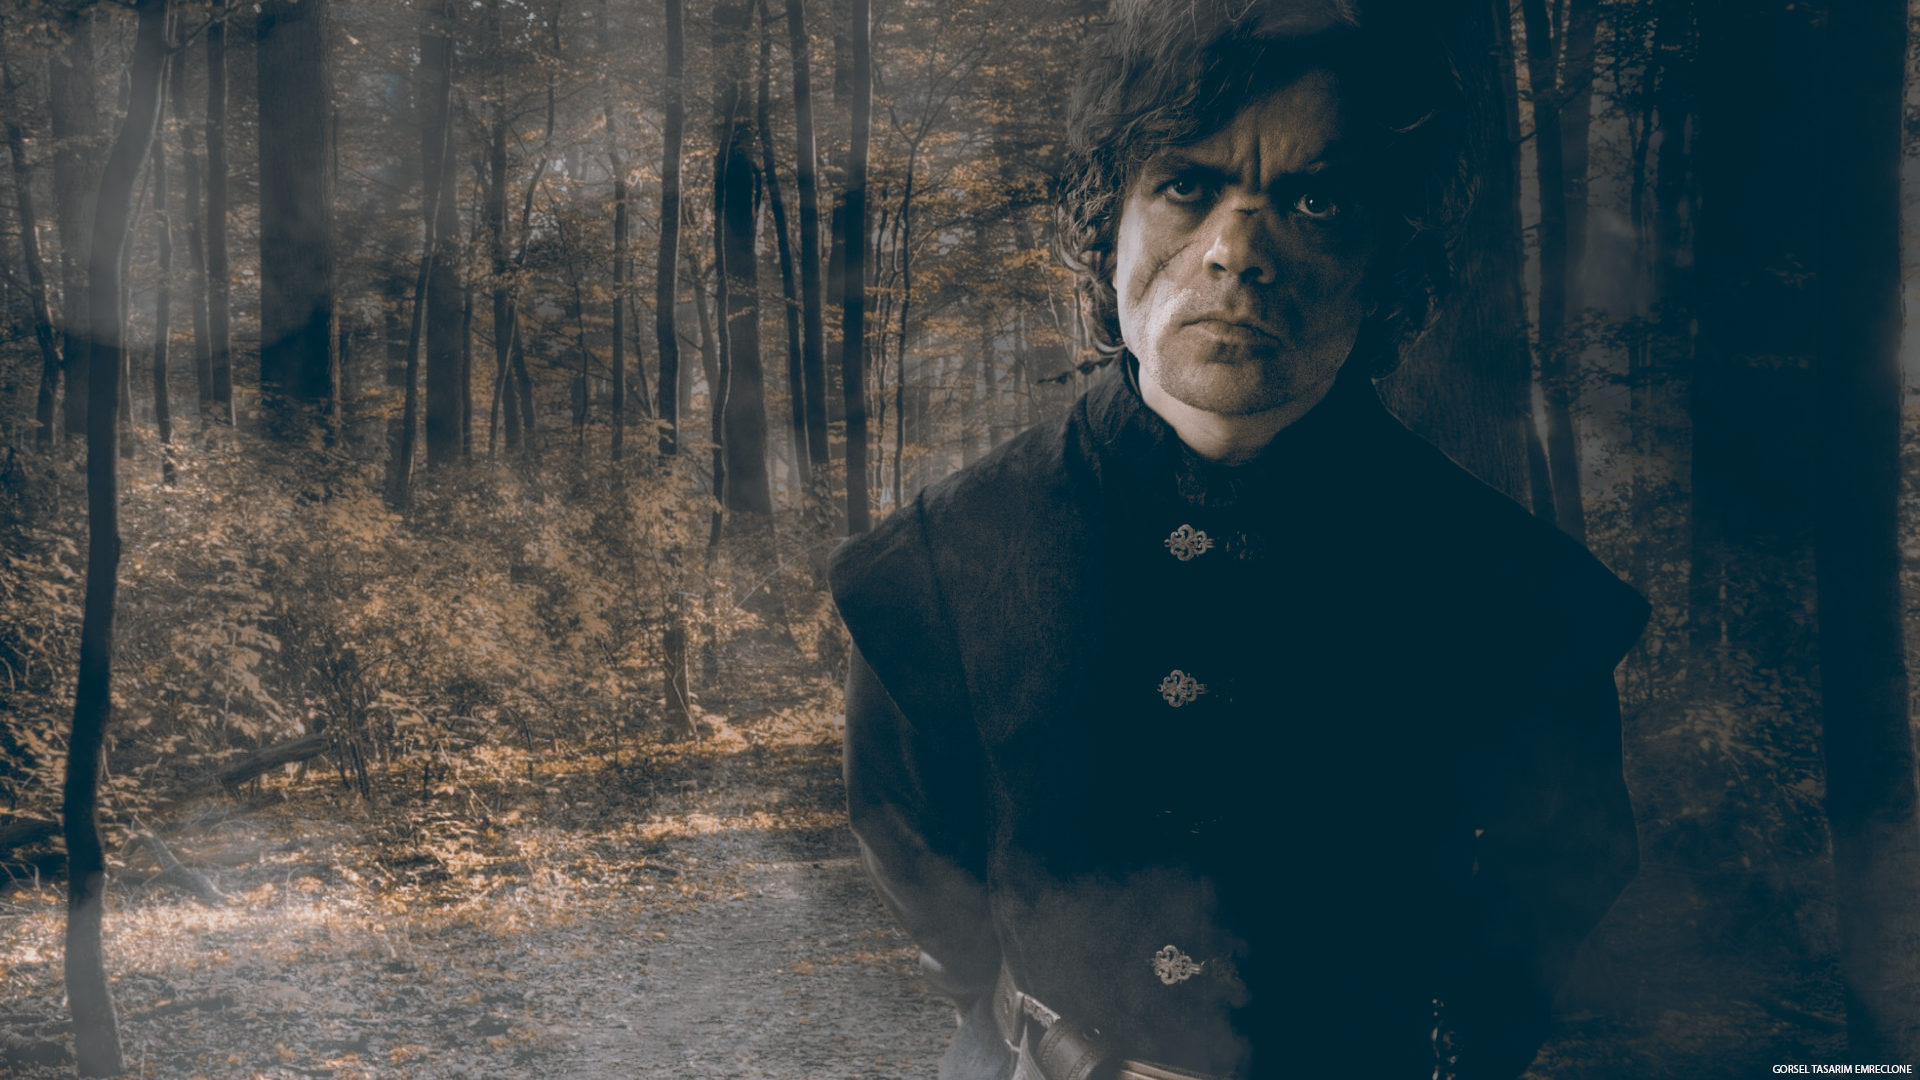 Game Of Thrones Season 6 Wallpapers: Tyrion Game Of Thrones Season 6, HD Tv Shows, 4k